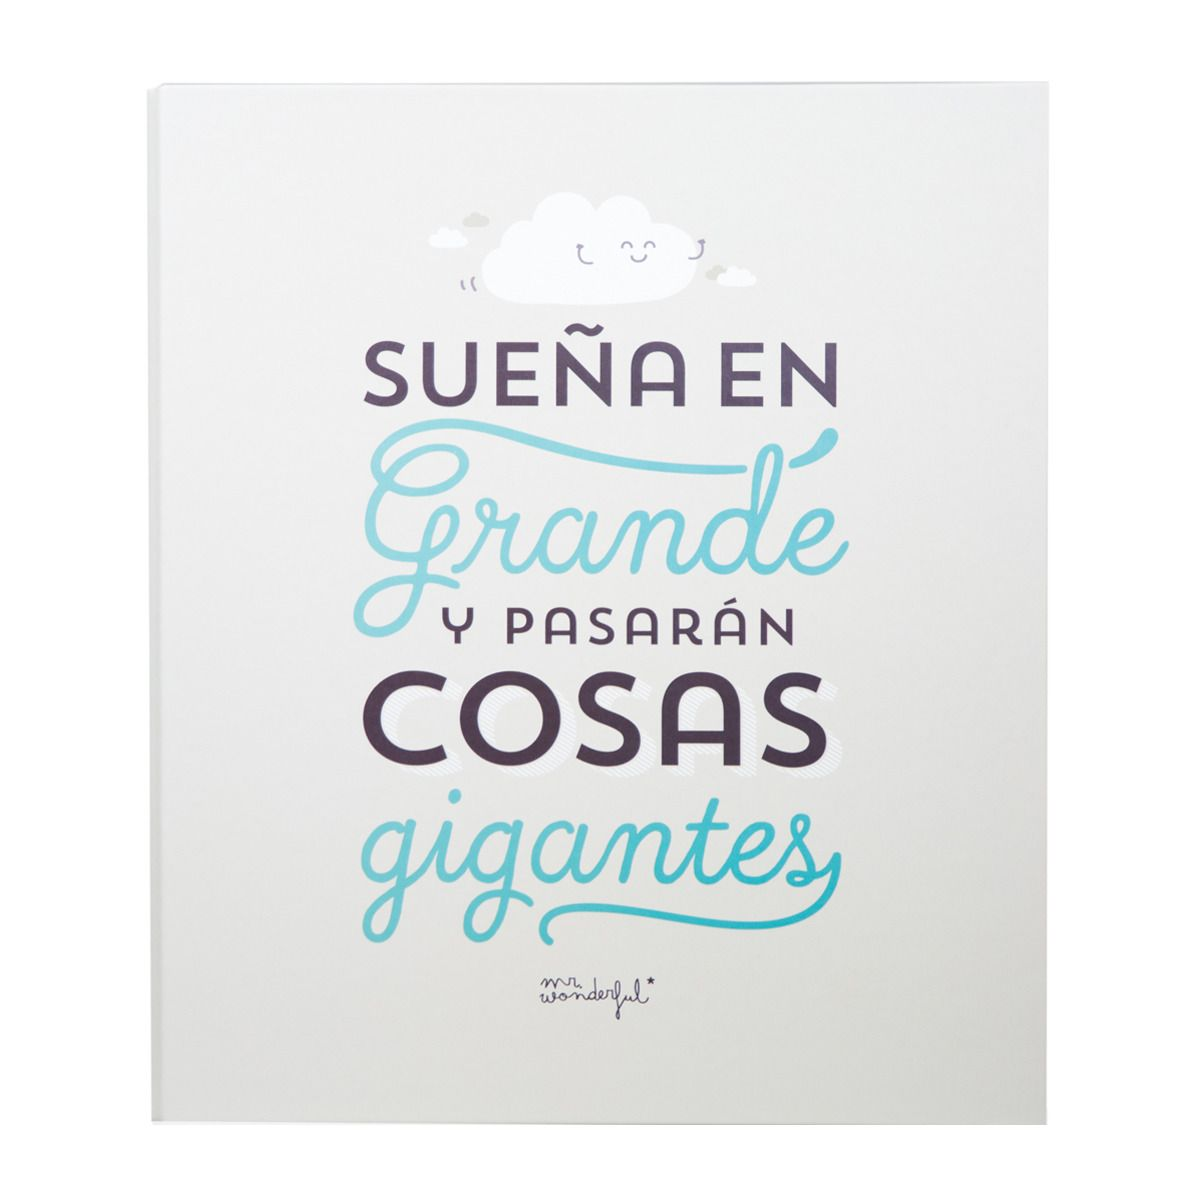 Archivador Mr Wonderful Sue A En Grande Y Pasar N Cosas Gigantes  ~ Comprar Agenda Mr Wonderful El Corte Ingles